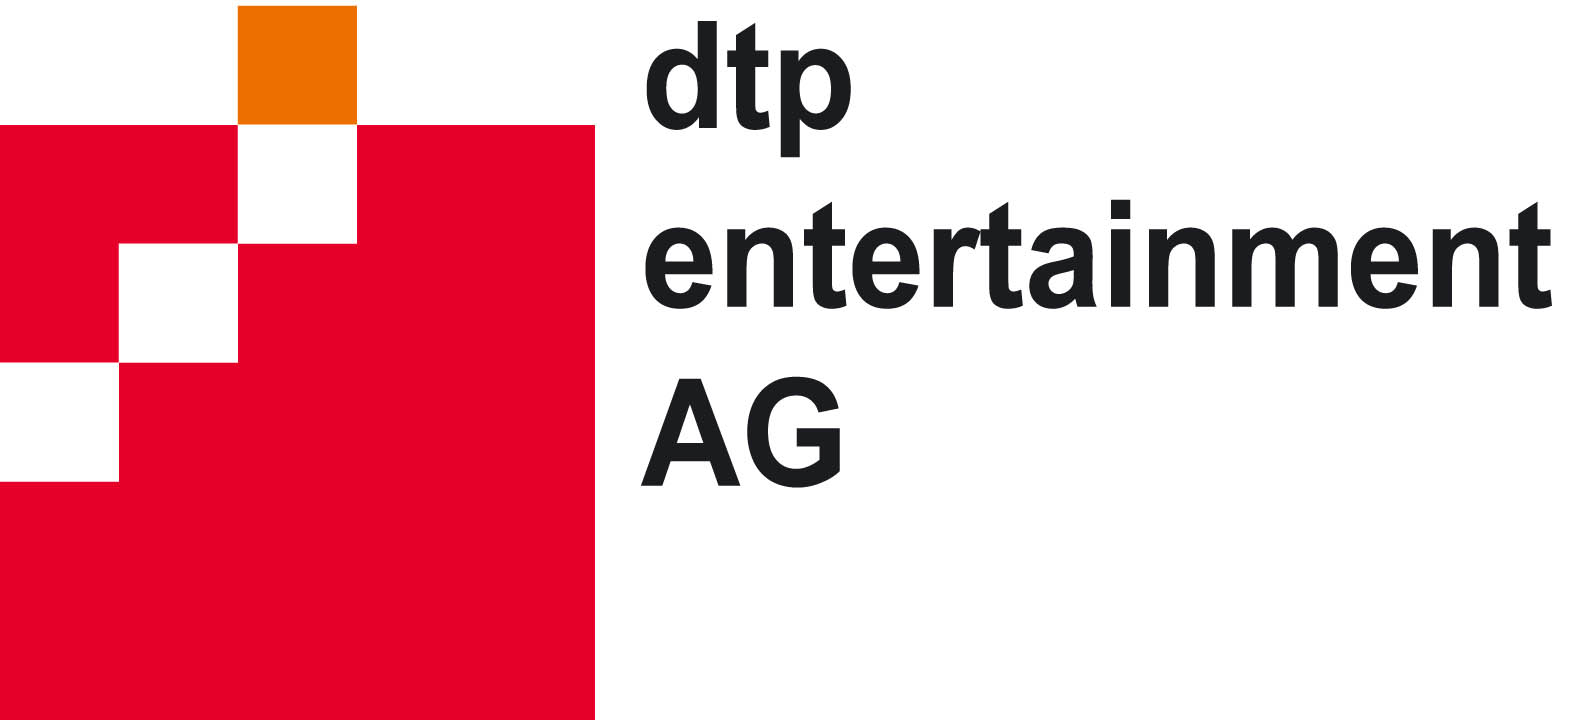 dtp entertainment AG